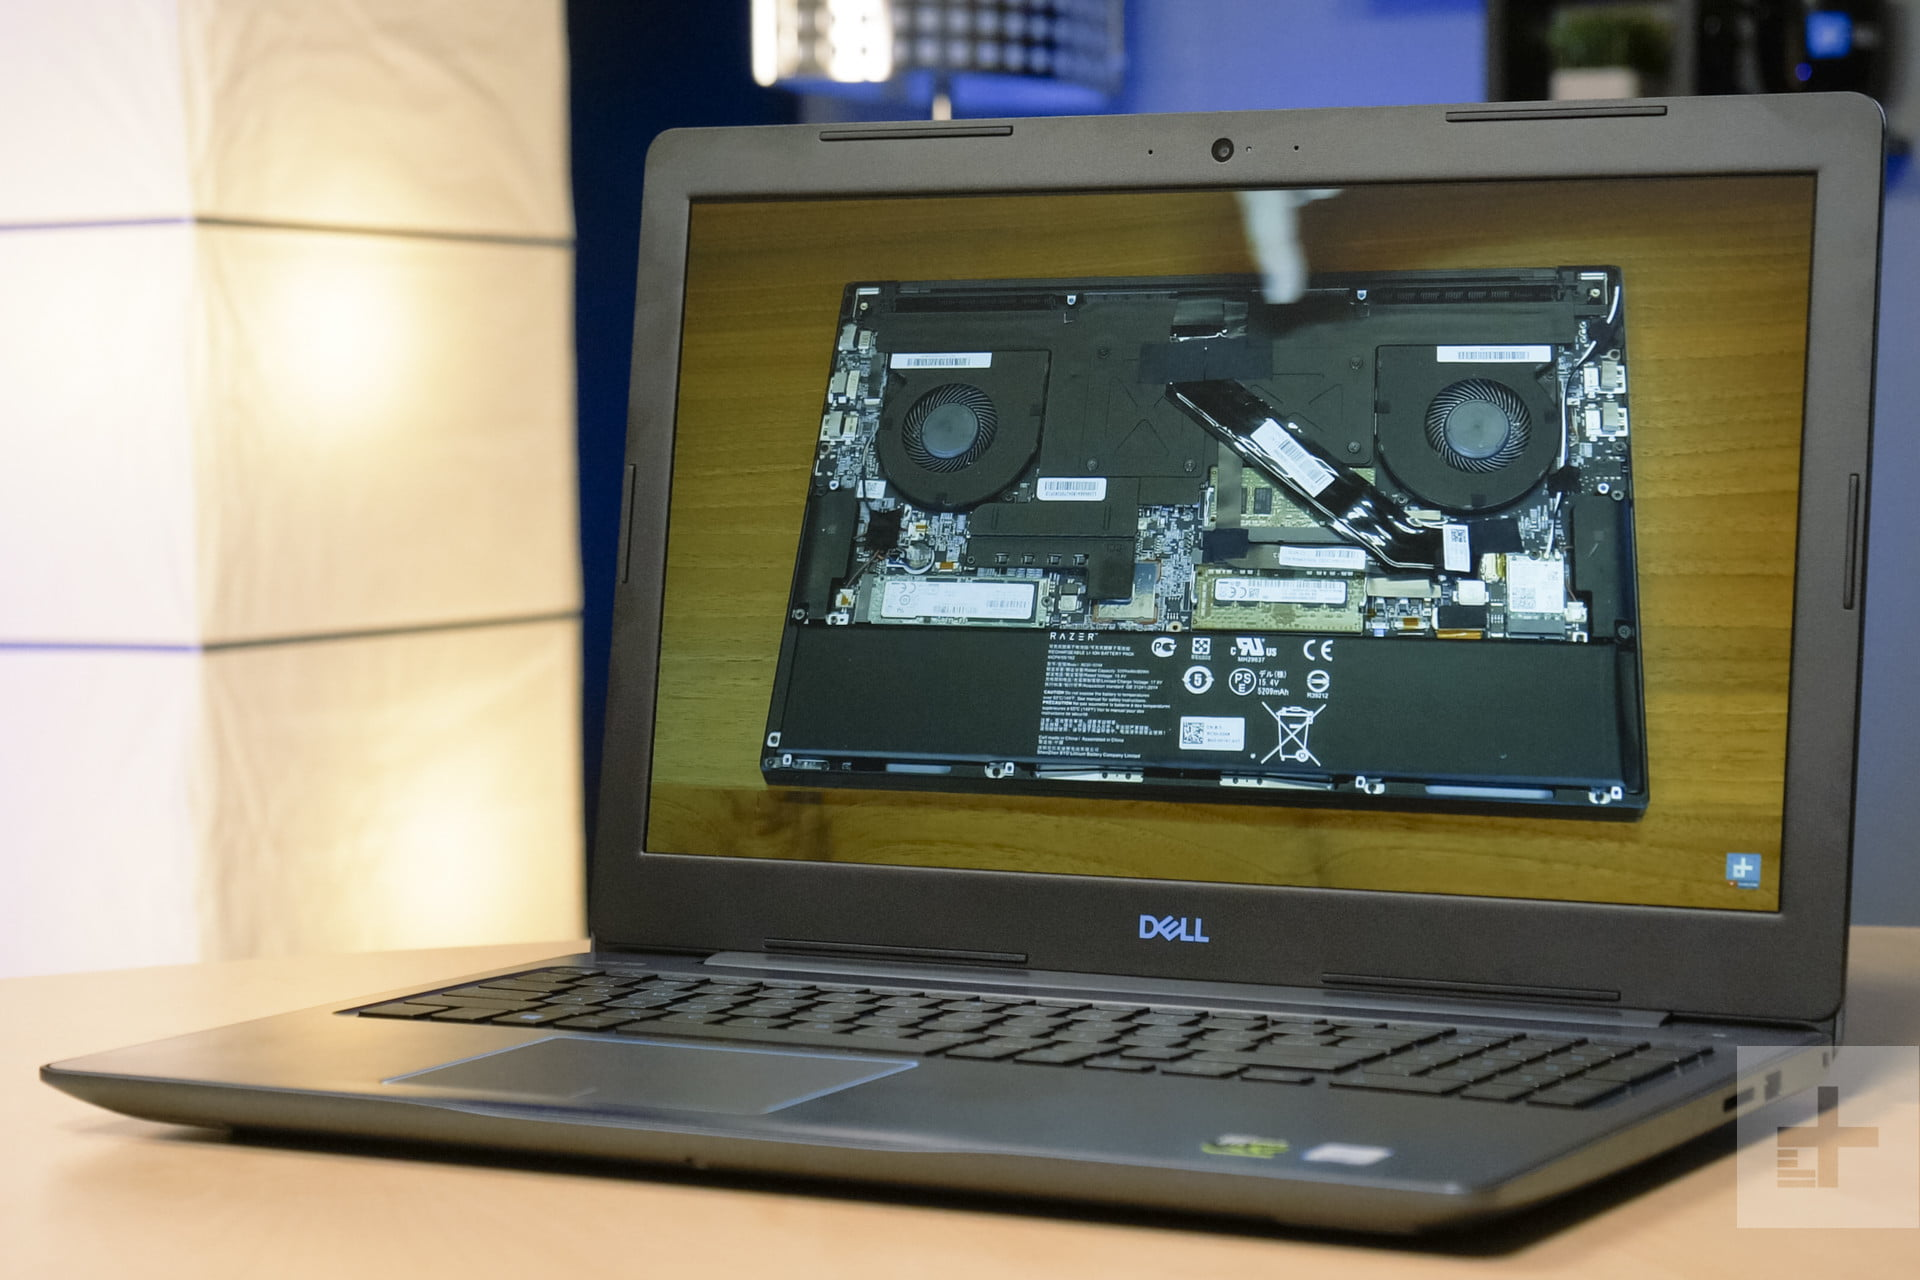 Dell G3 Gaming Laptop Review | Digital Trends